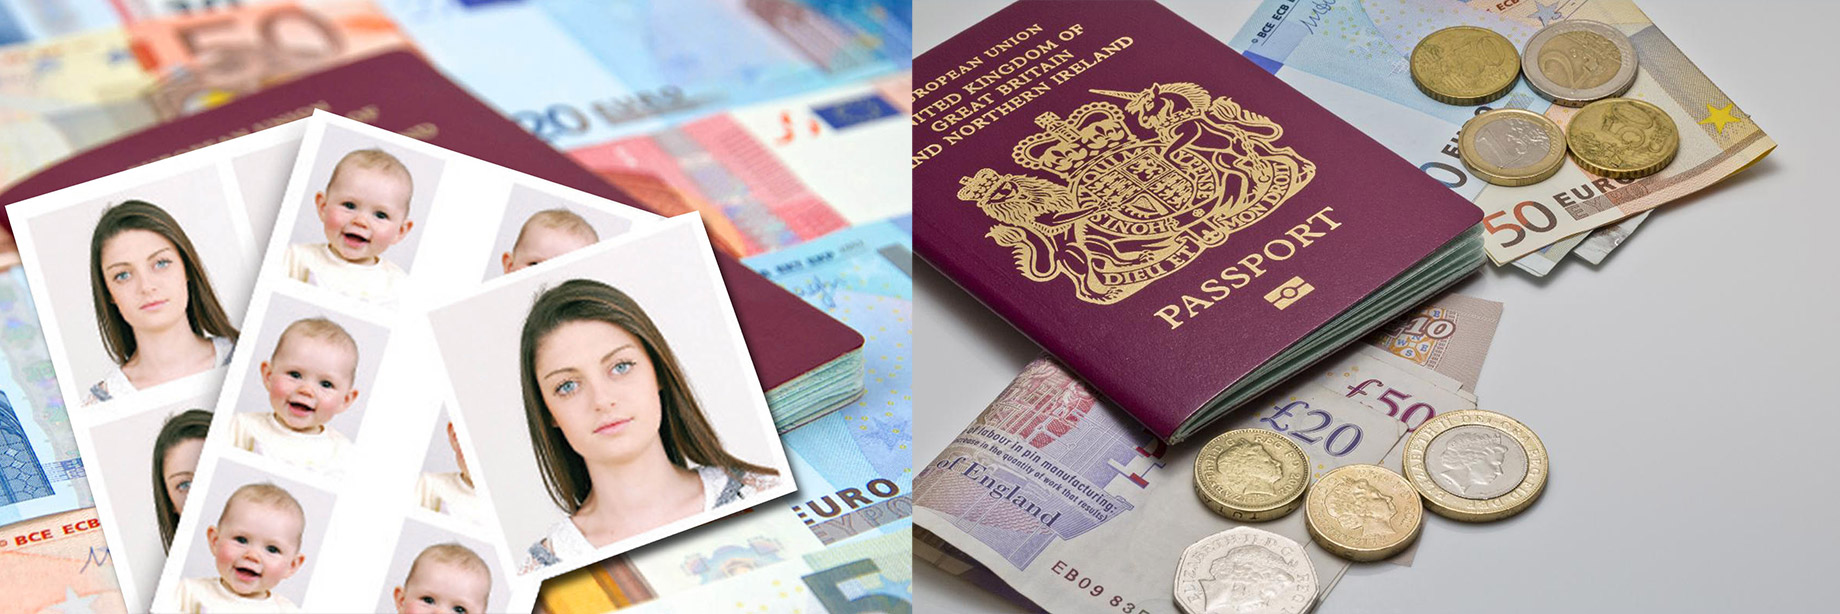 Passport and Visa Photos for any country